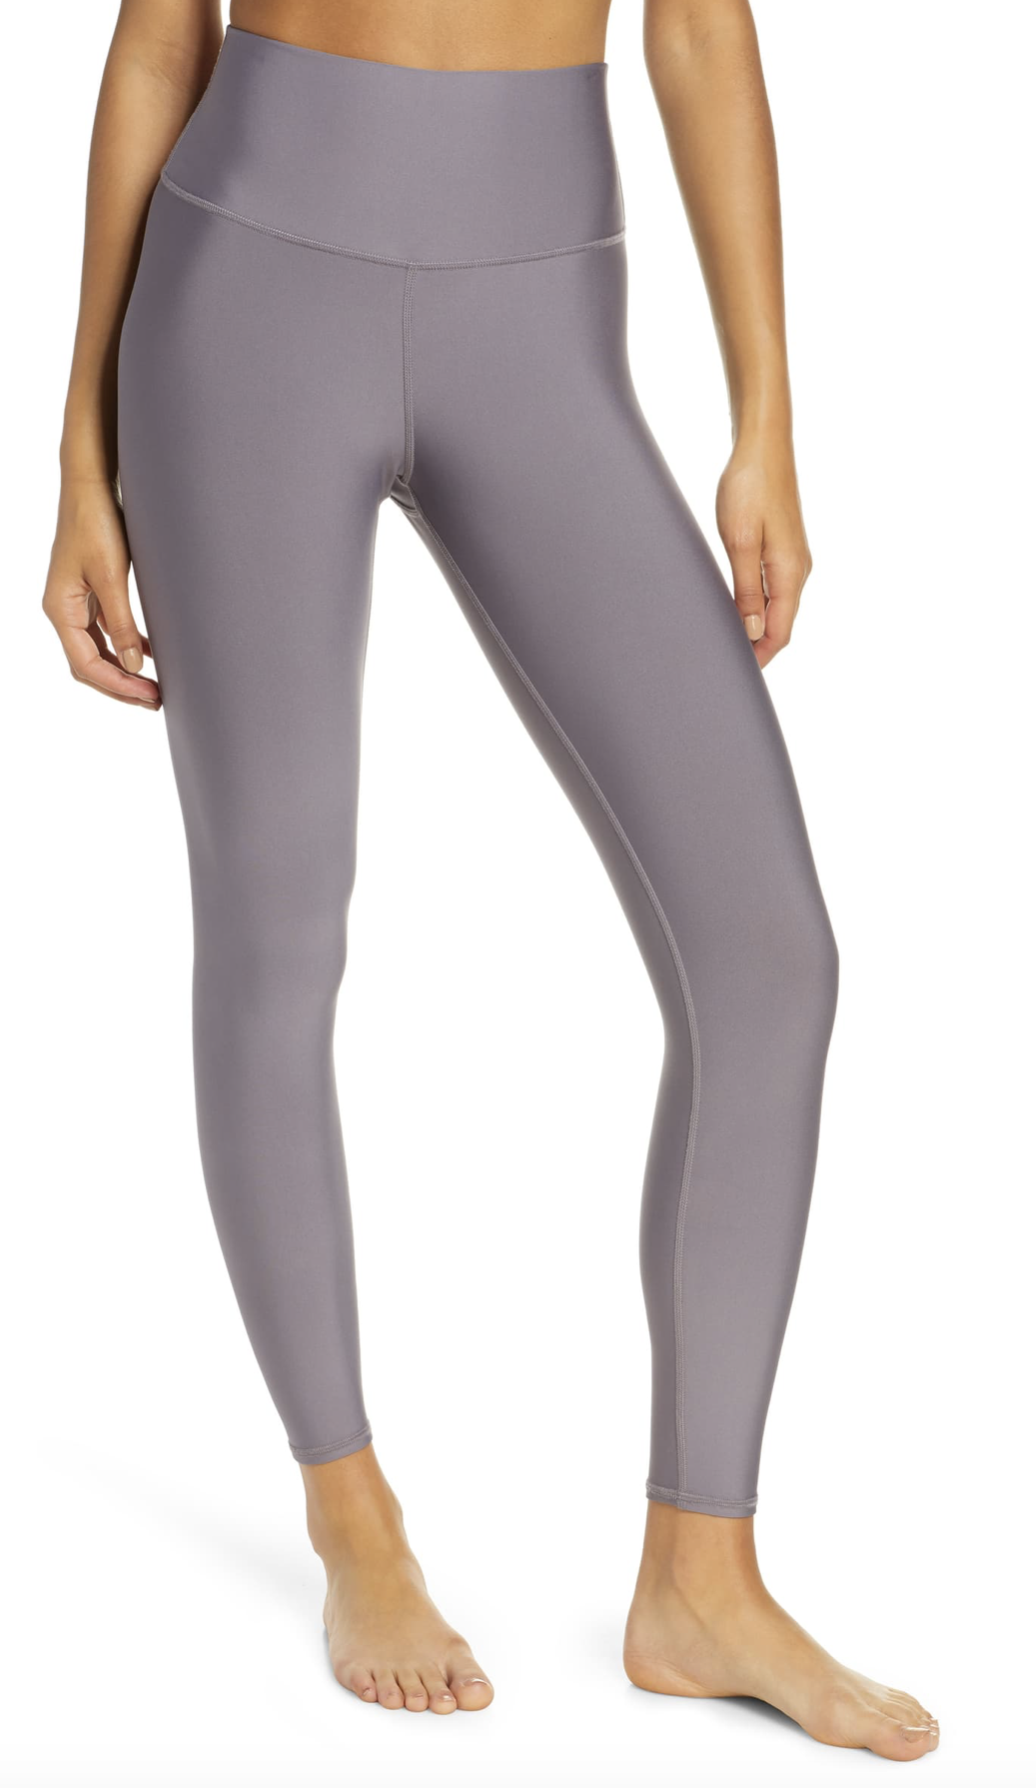 Alo Airlift High Waist Leggings - $75.90